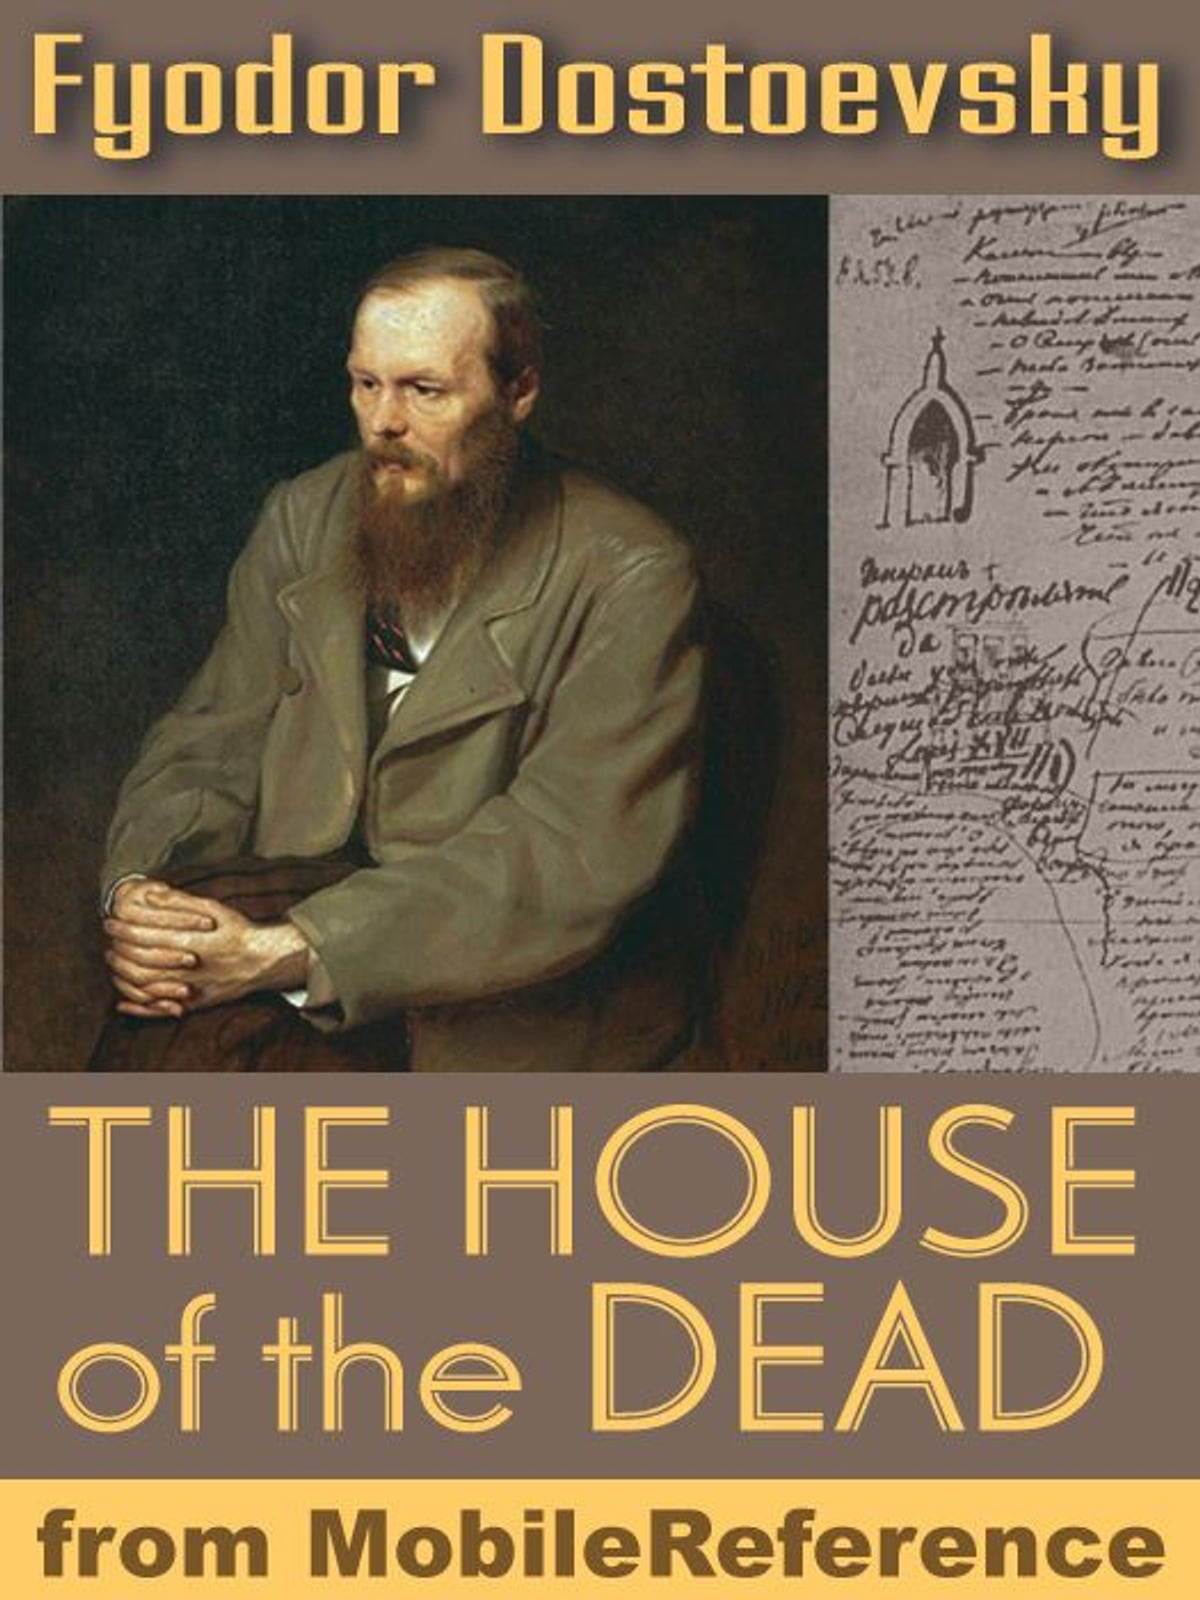 Biography of Dostoevsky. Interesting facts from the biography of Dostoevsky